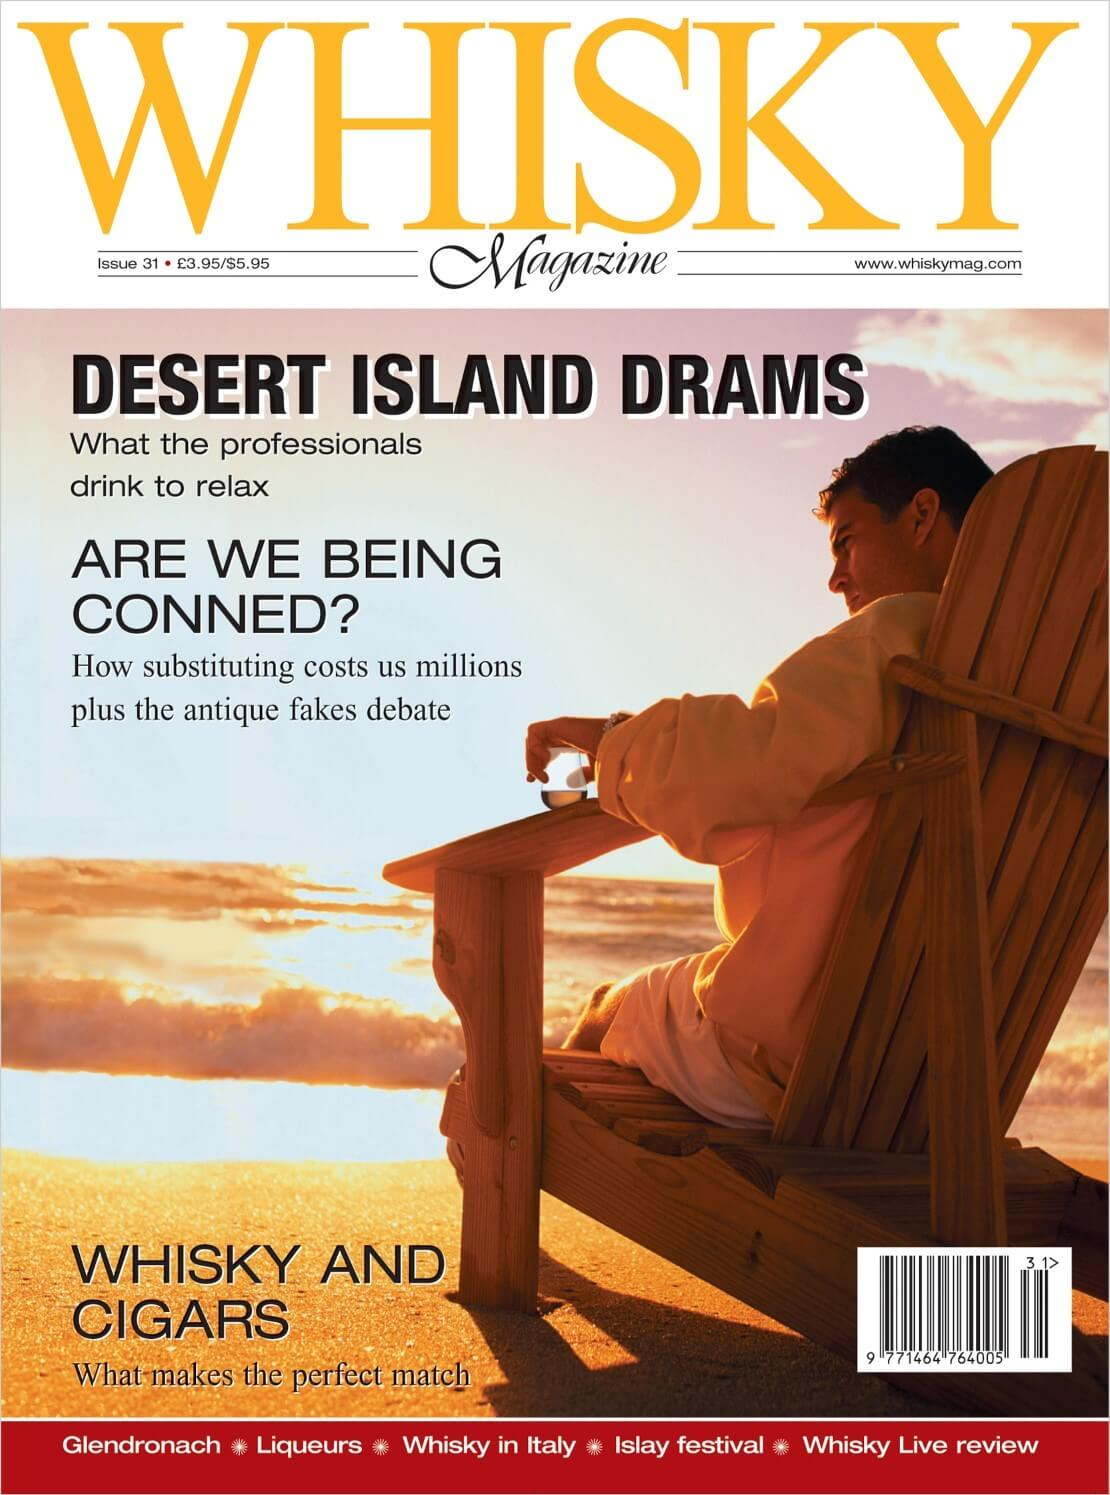 Desert Island Drams Whisky Cons Liqueurs Whisky & cigars